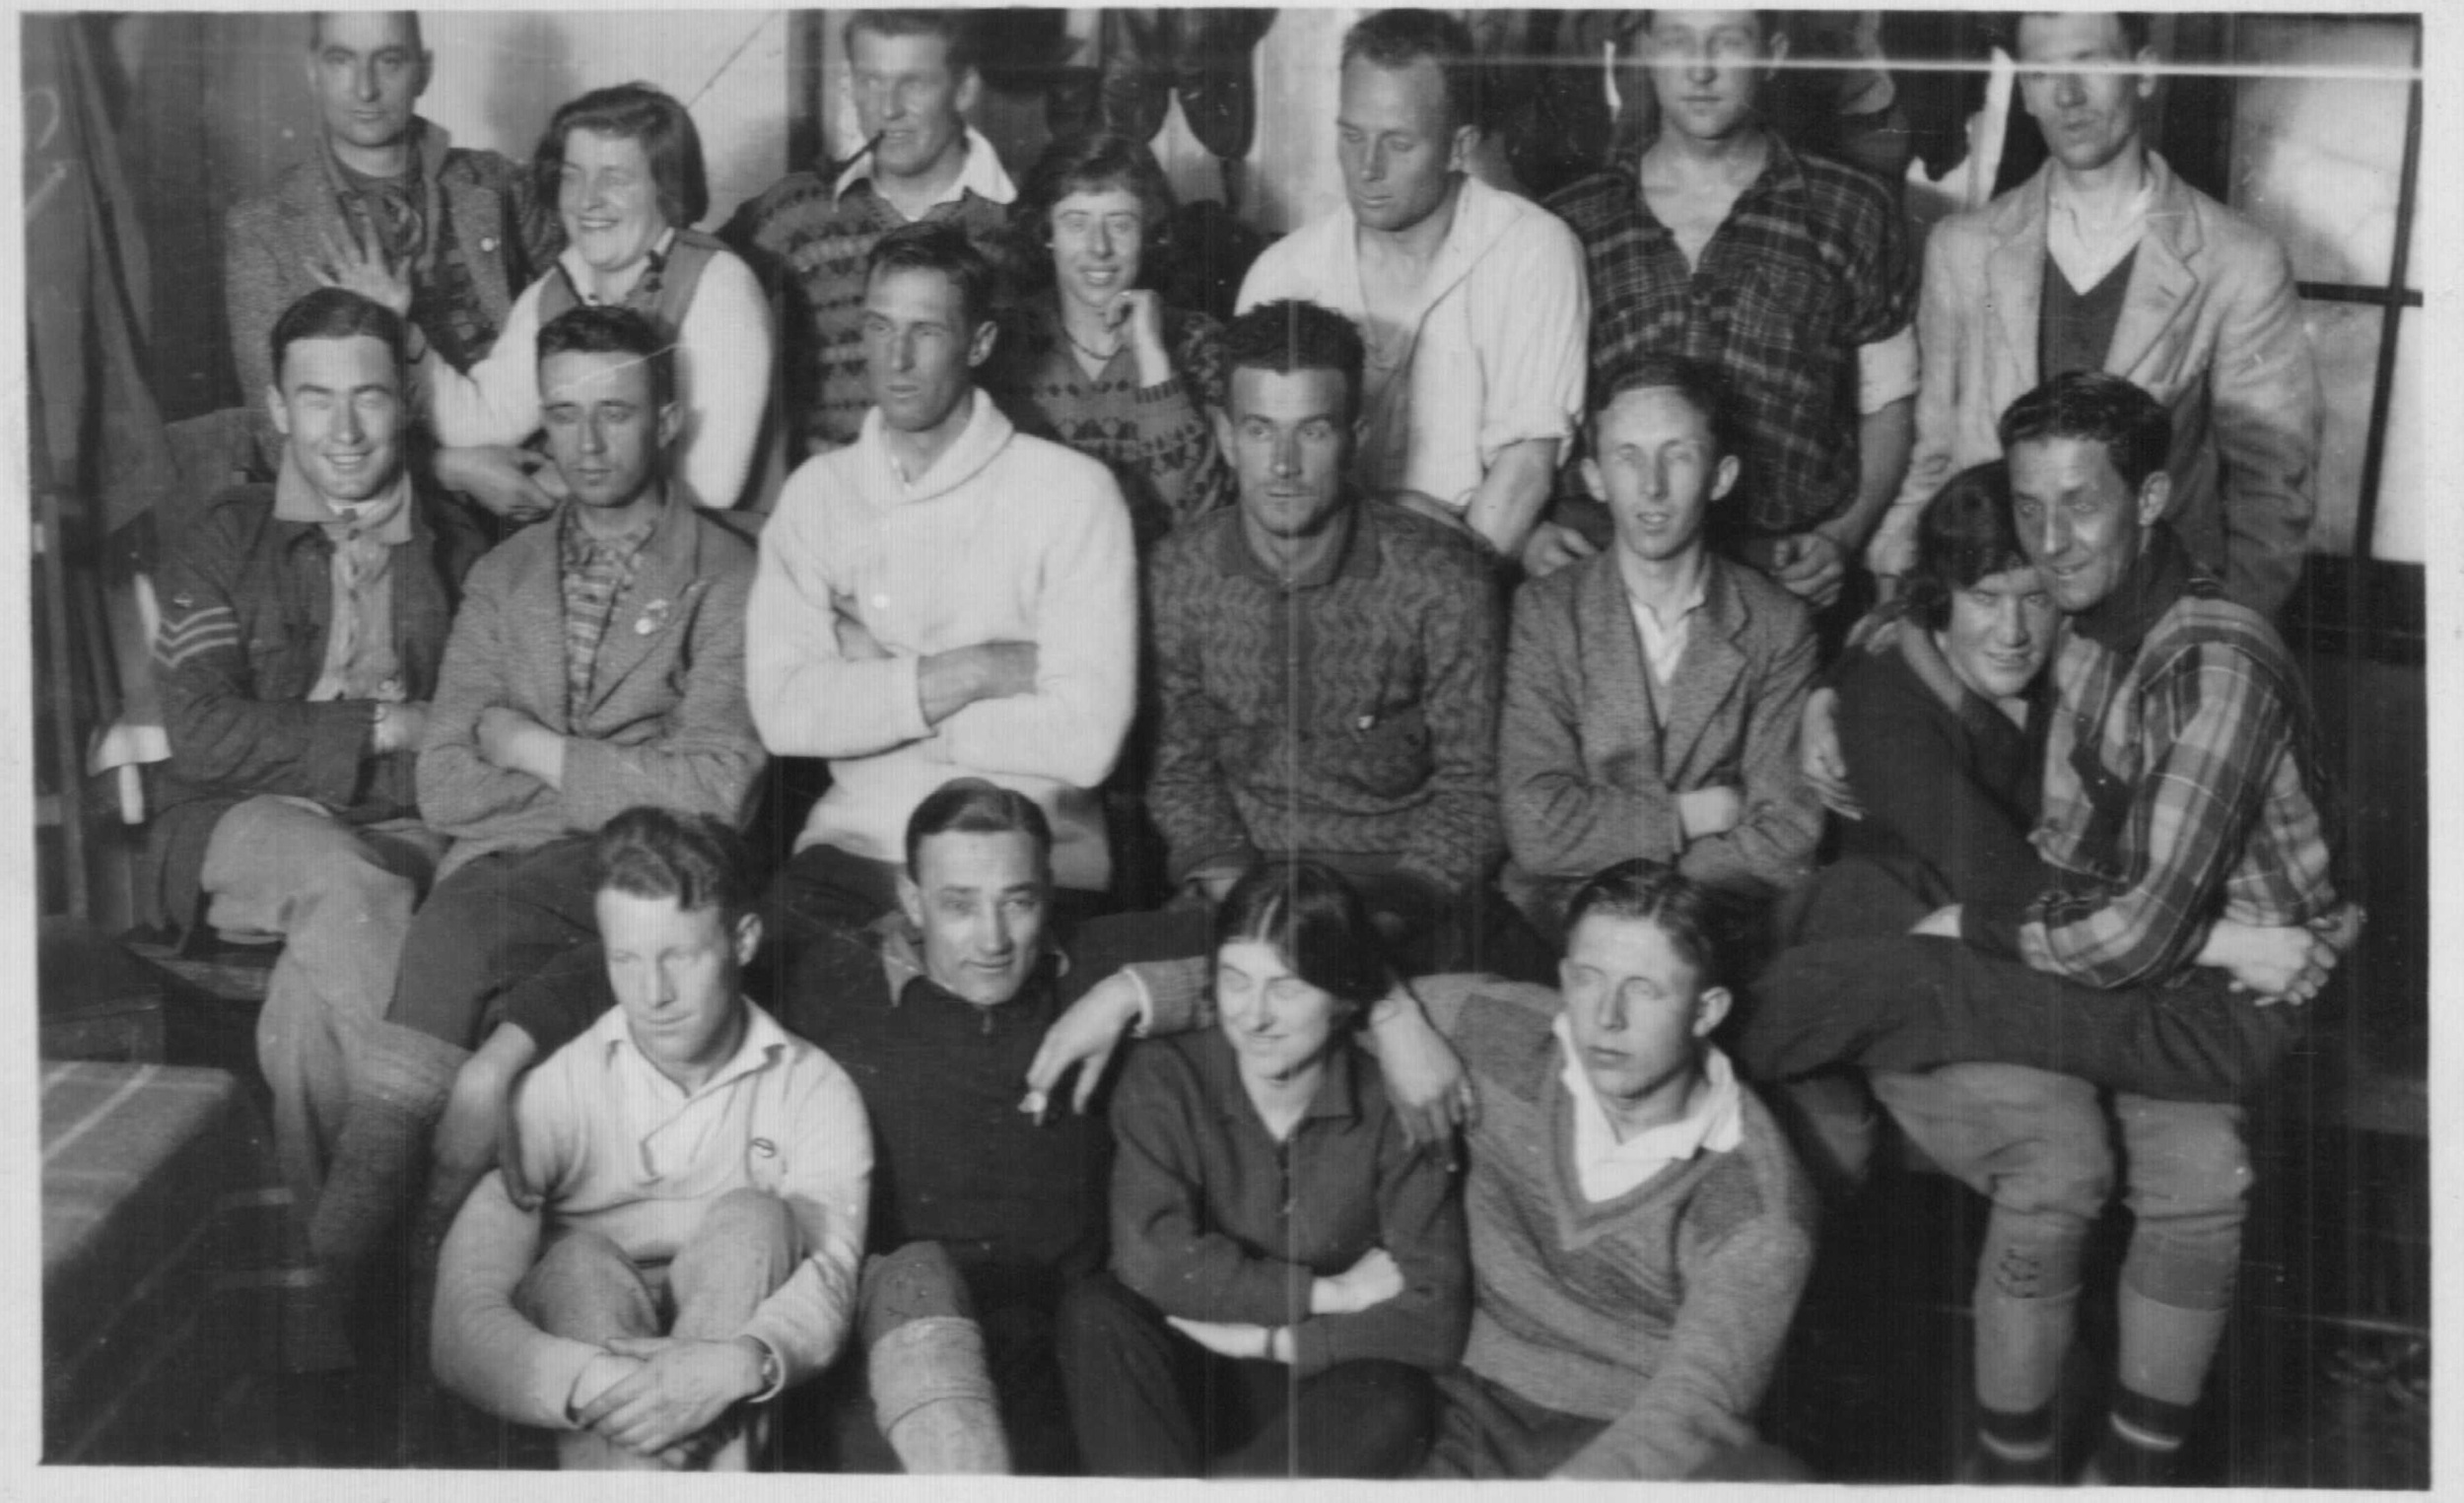 SCV 1929 club championships group shot. While it doesn't reveal much, this may be the only surviving interior photo of the Bungalow. Photo Kath Magill.